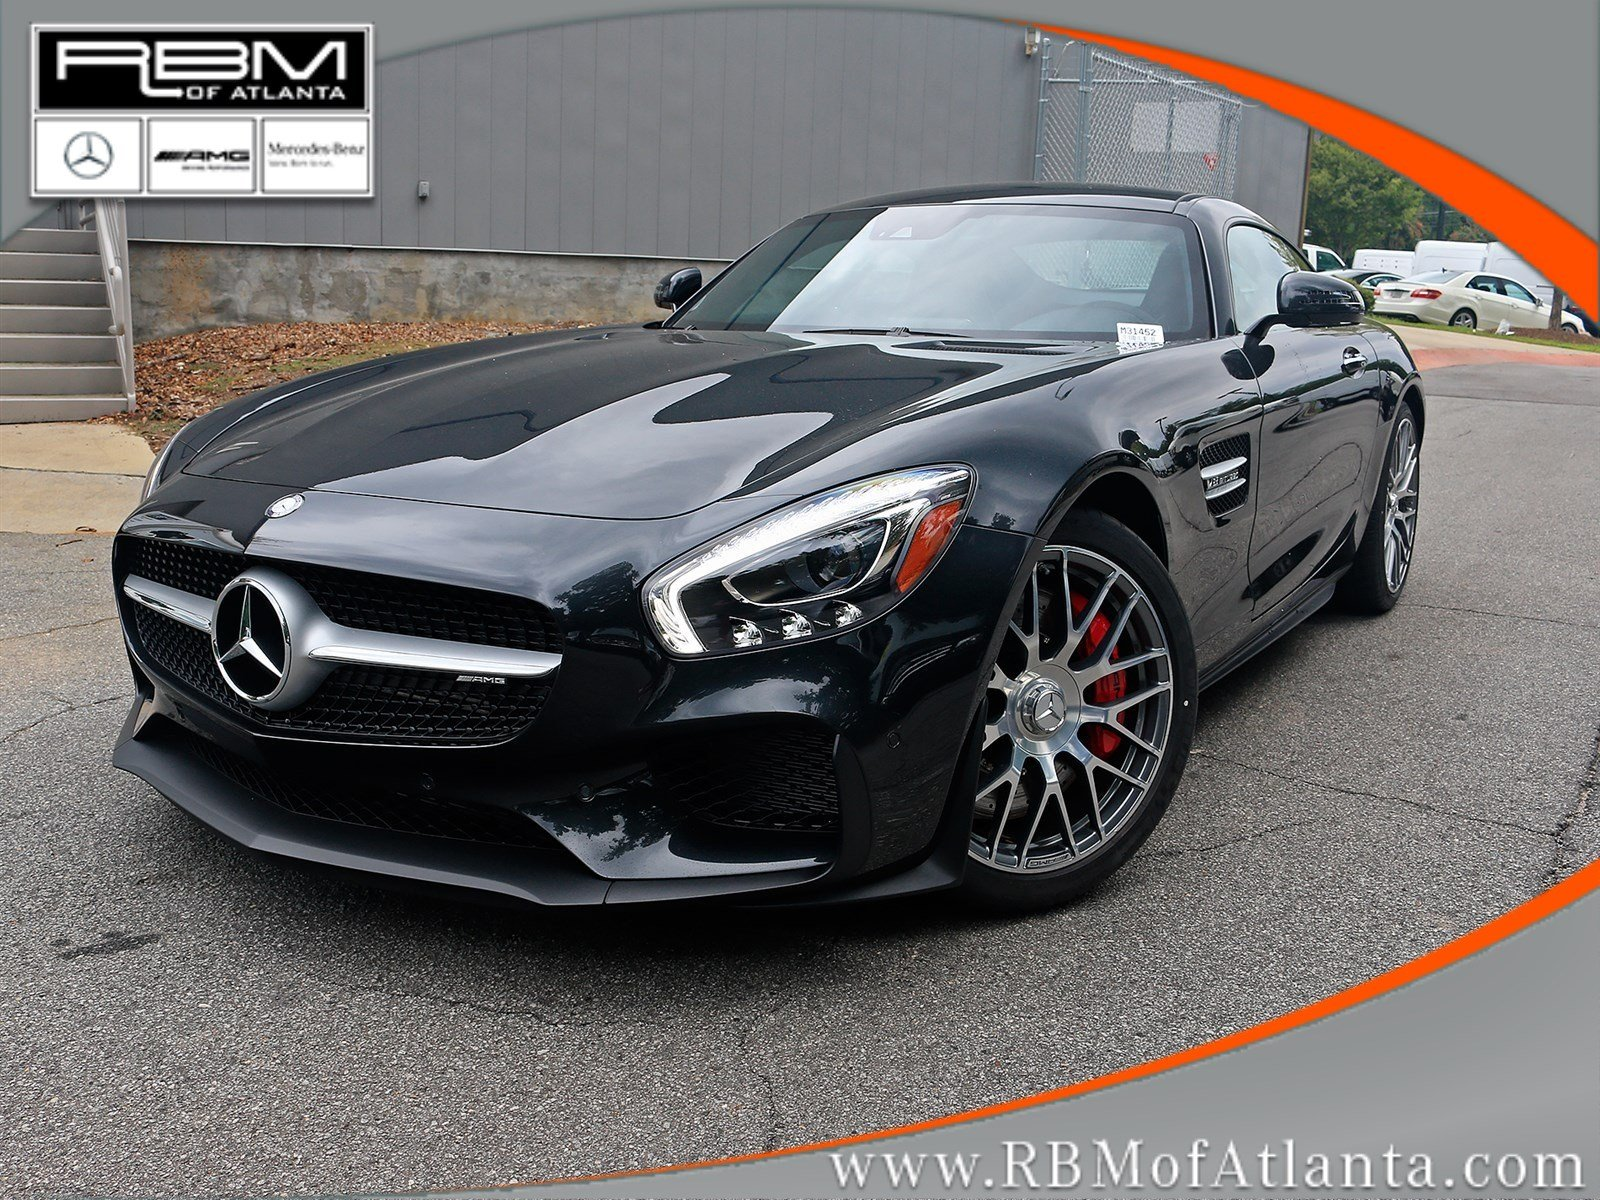 New 2017 mercedes benz amg gt amg gt s 2dr car in for 2017 mercedes benz amg gt msrp